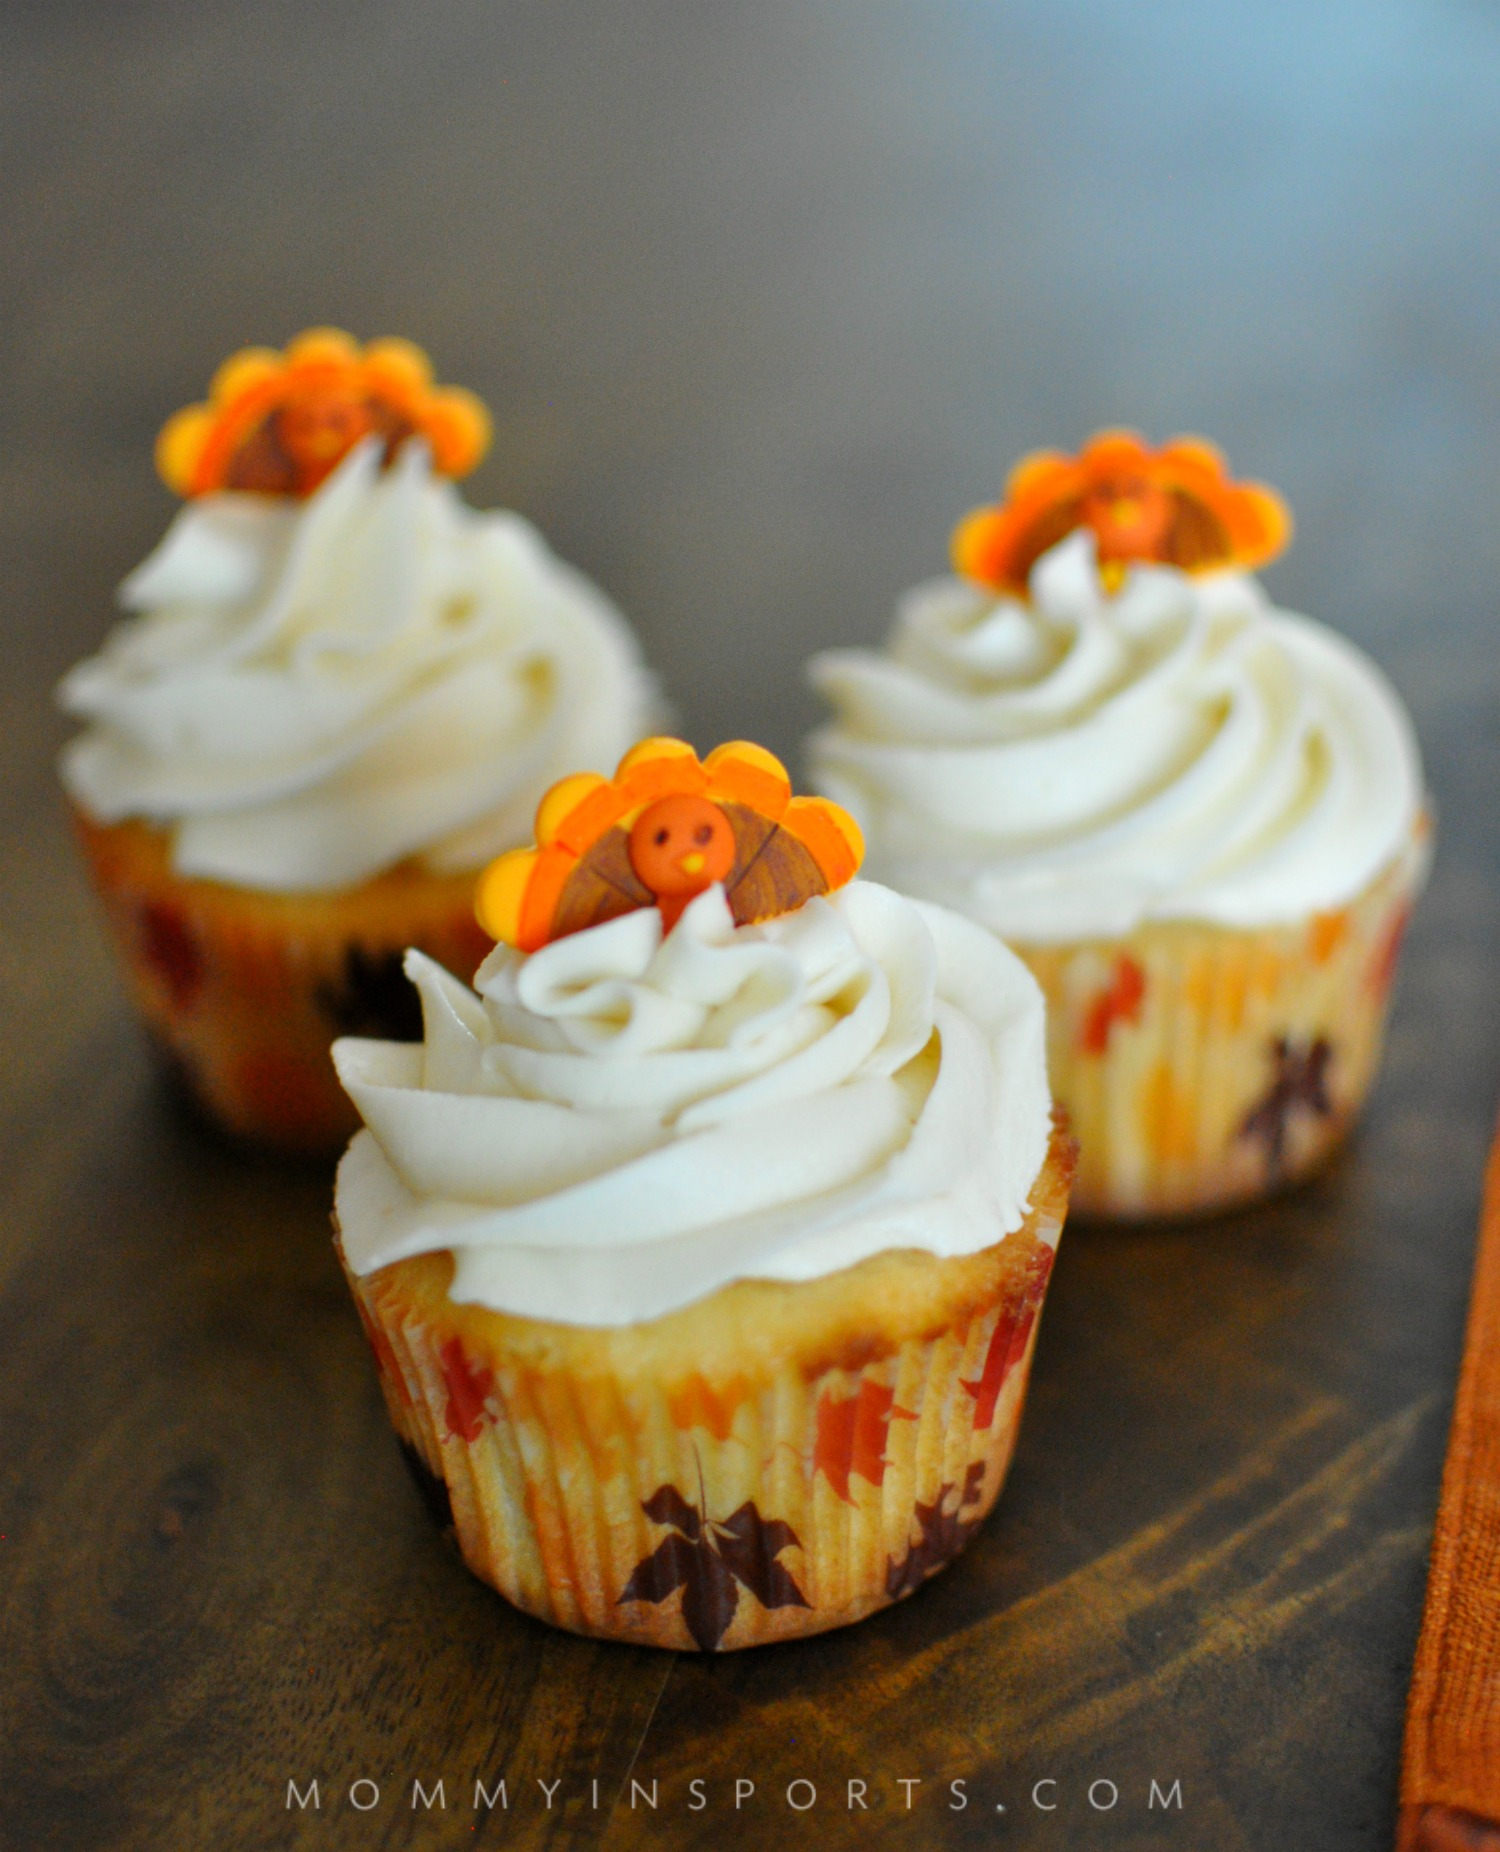 Need a dessert your friends and family will gobble up on Thanksgiving? Try these too cute Thanksgiving Turkey Cupcakes